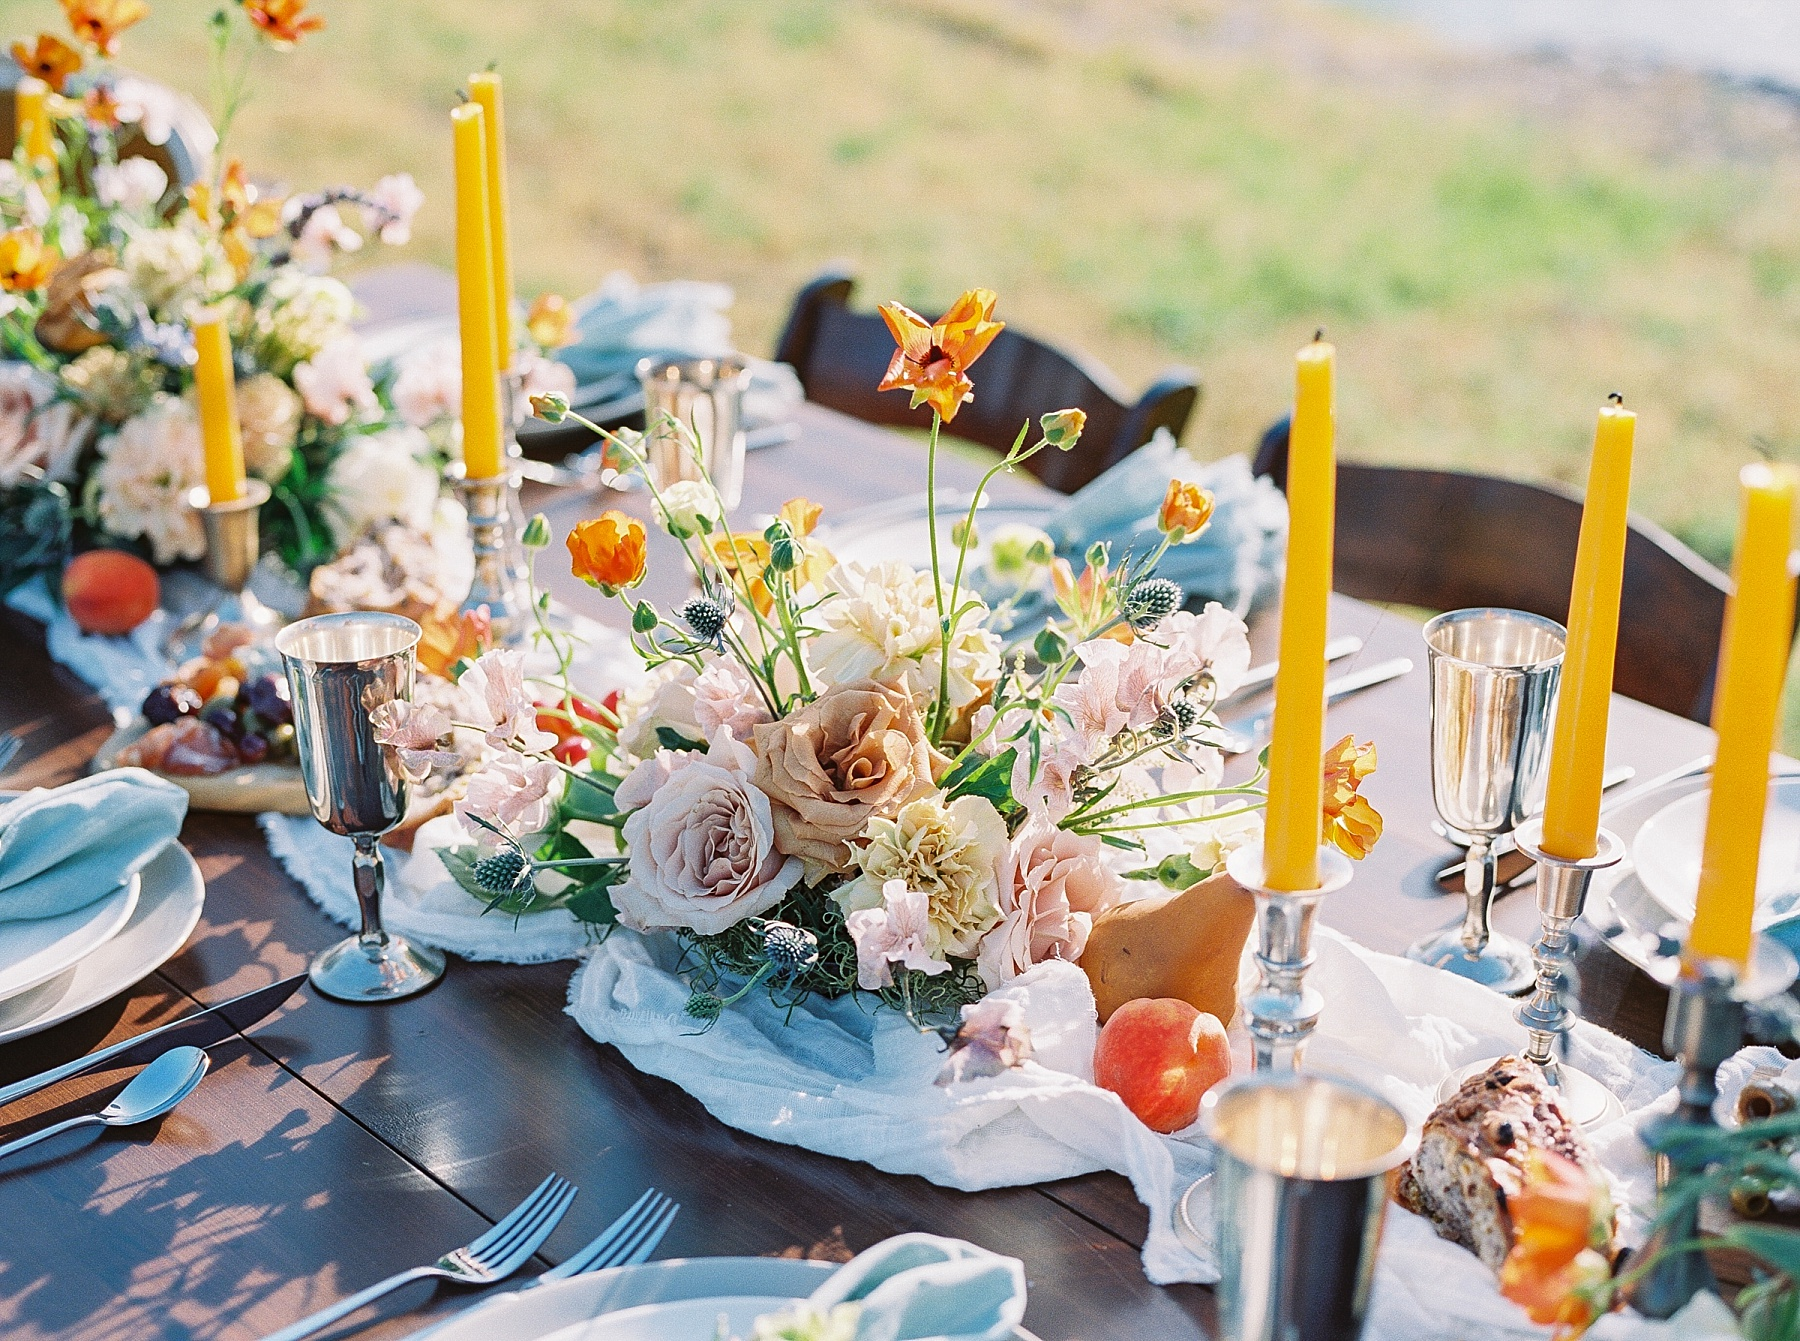 Intimate Spanish and French Inspired Destination Wedding with Lakeside Dinner Party at Dusk at Wildcliff by Kelsi Kliethermes Photography Best Missouri and Maui Wedding Photographer_0006.jpg